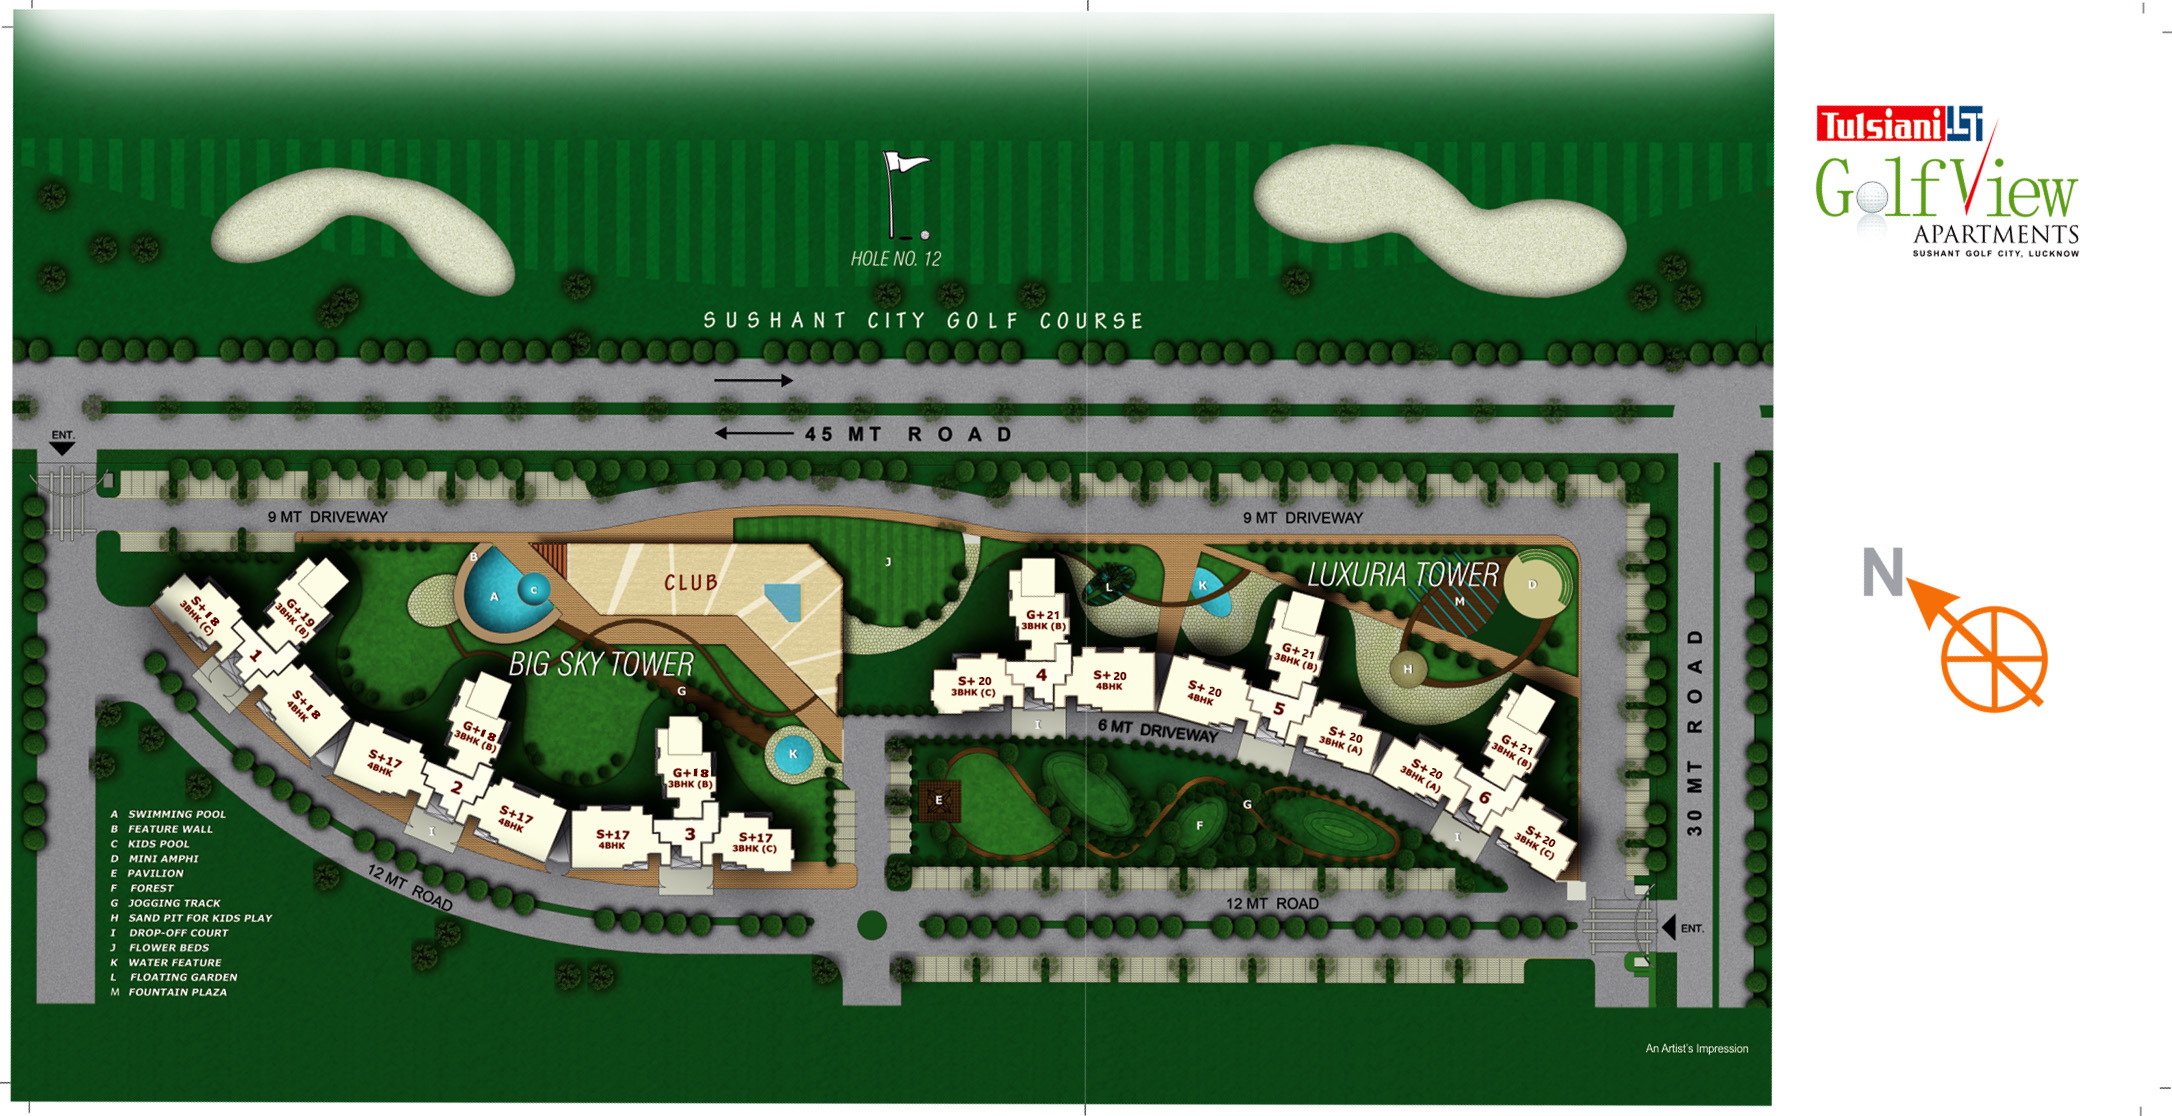 Tulsiani golf view apartments for Apartment plans for 60x40 site